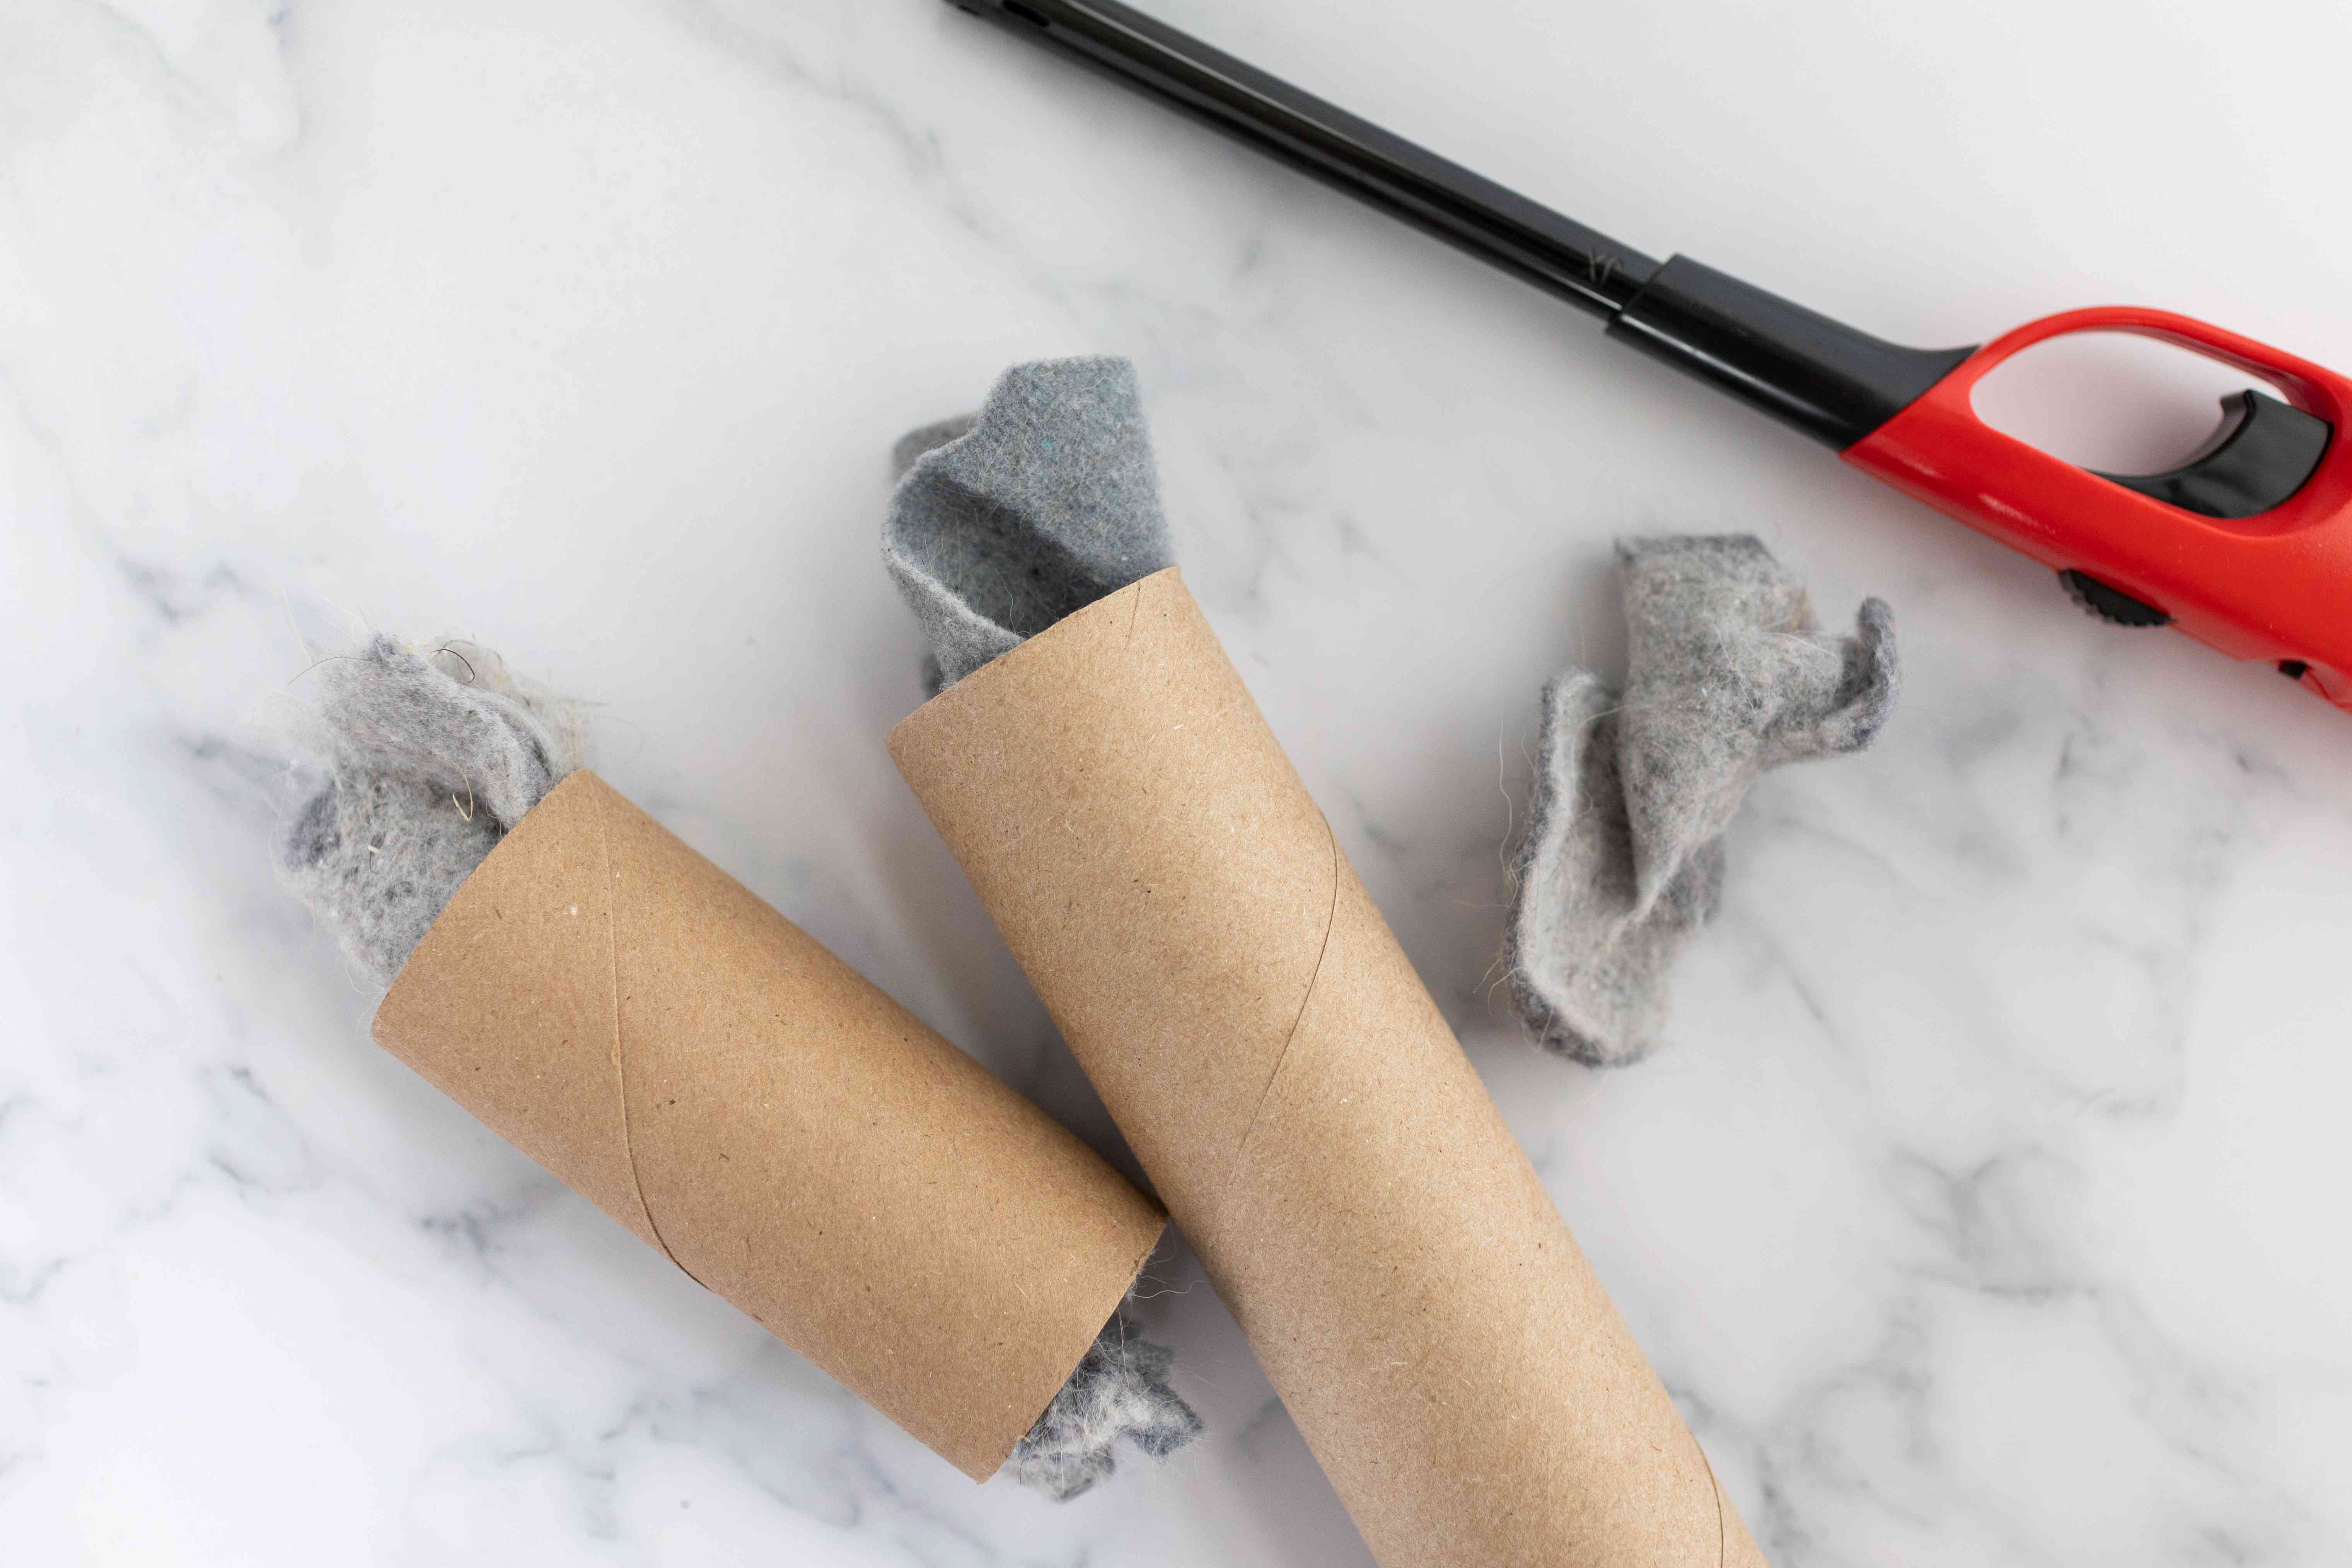 used toilet paper rolls are stuffed with dryer lint as a fire starter with lighter